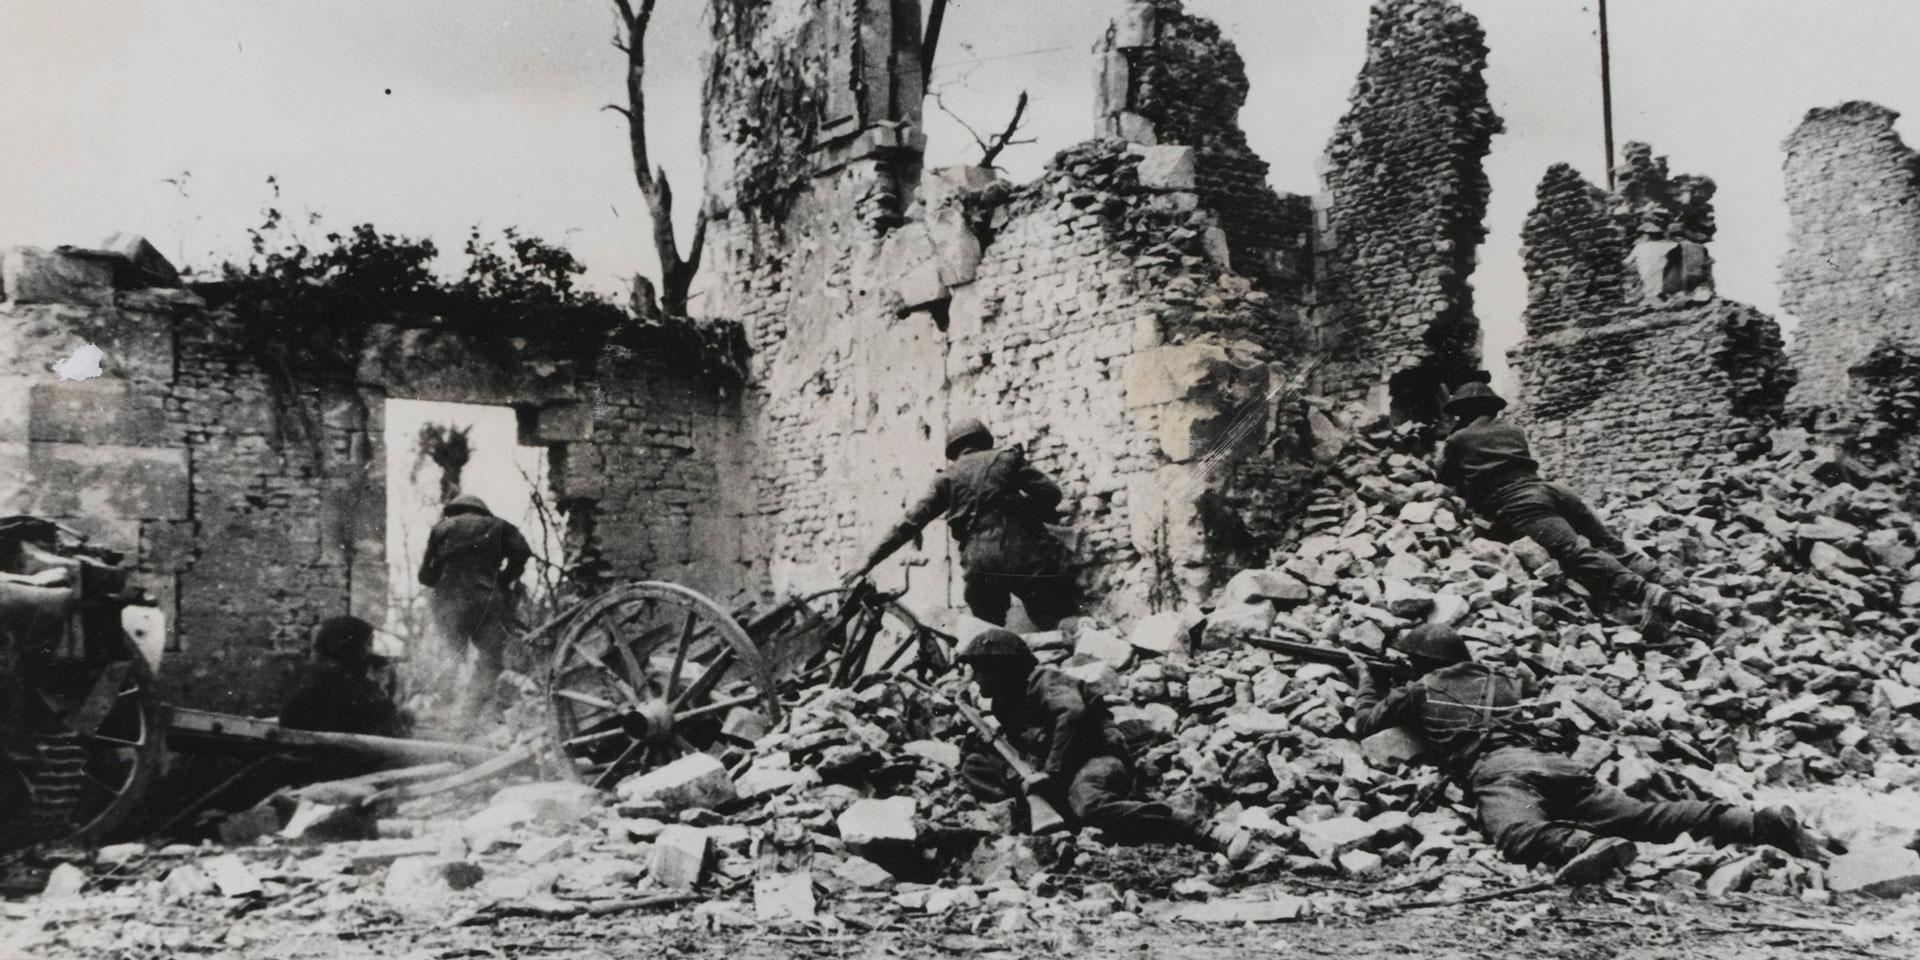 Fighting in the ruins of Caen, 1944